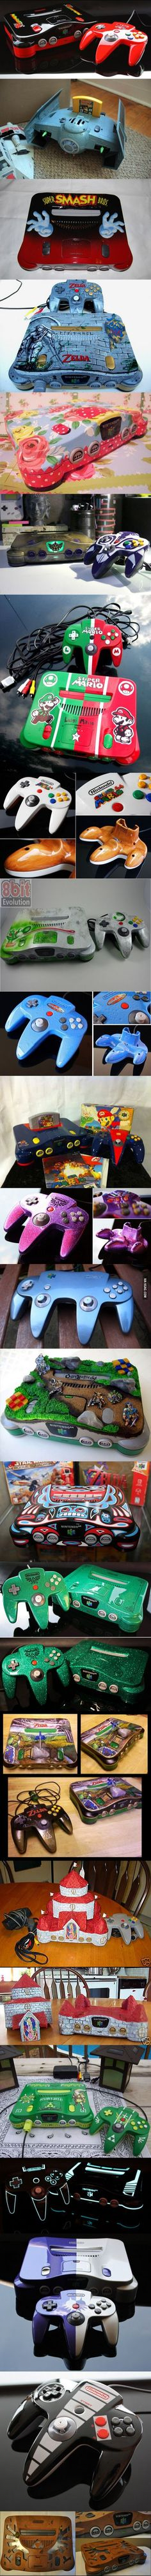 AMAZING Custom Painted Gaming Gear!!!